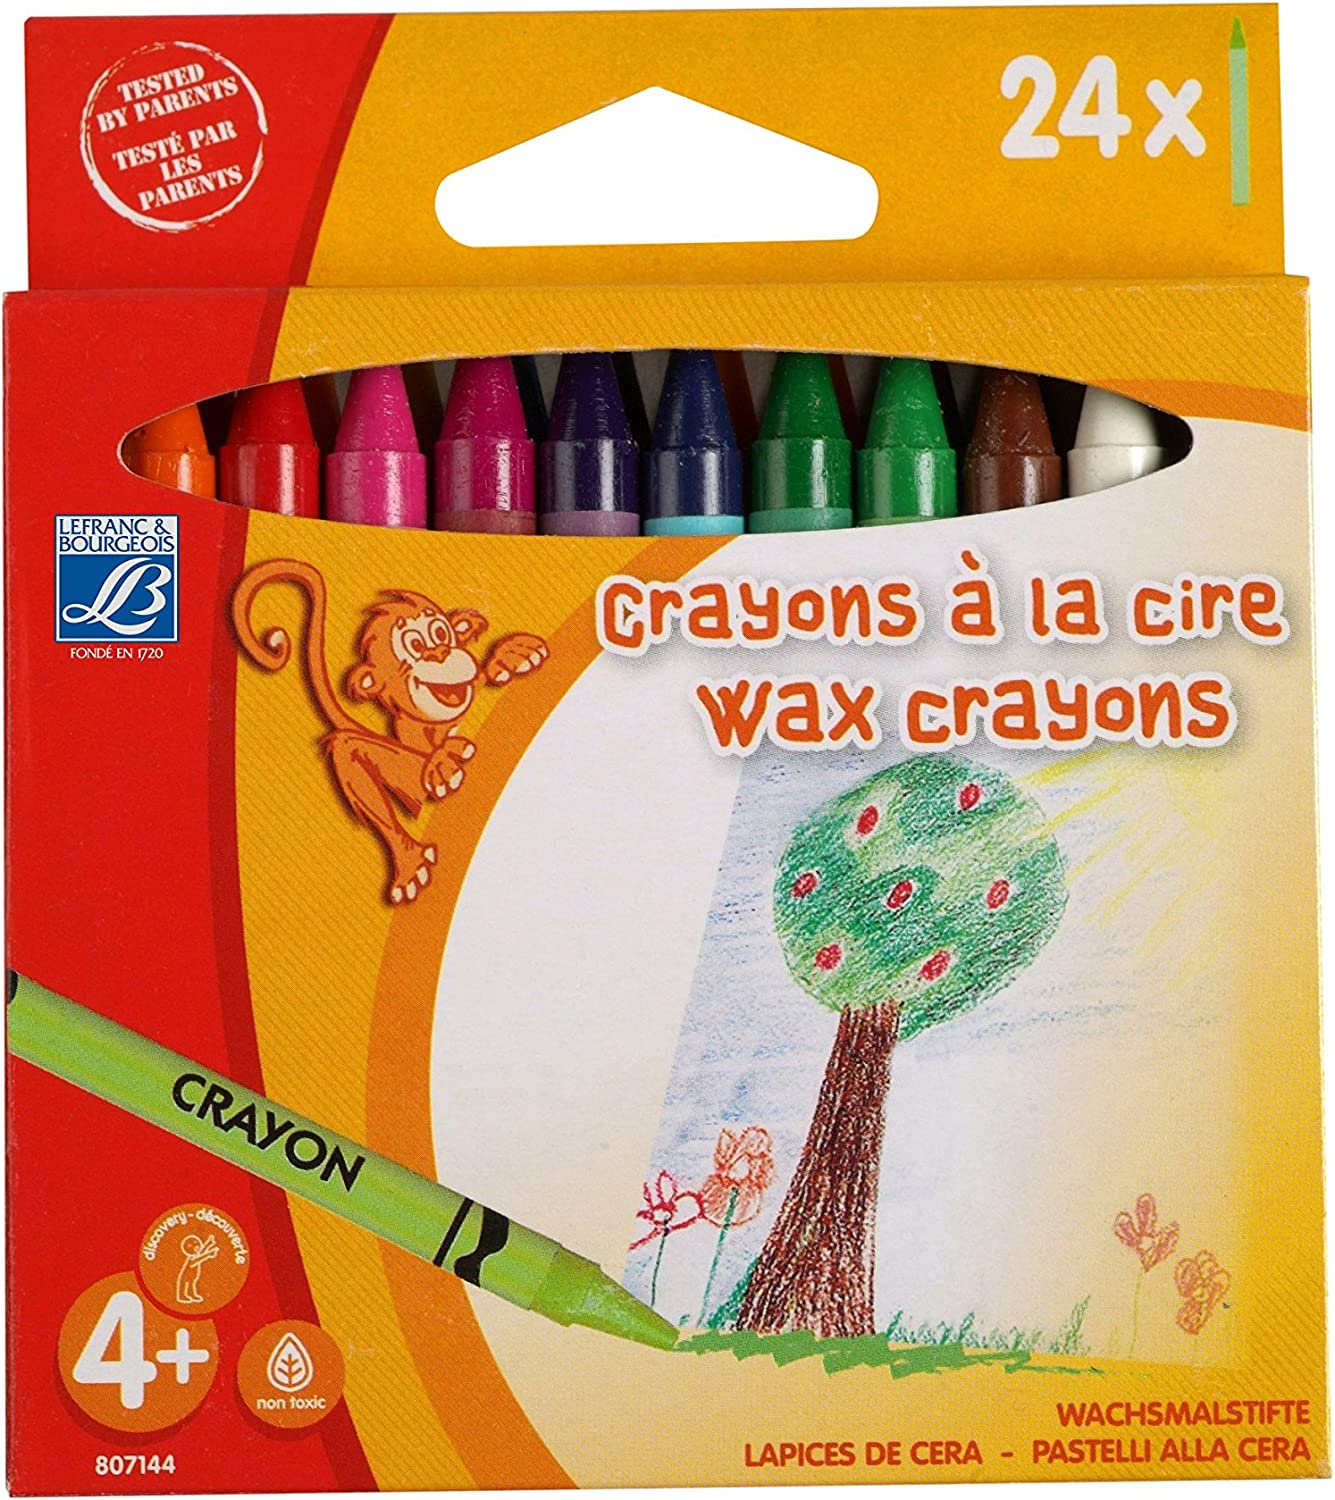 Lefranc Bourgeois Set of 16 Wax Pencils 8 mm